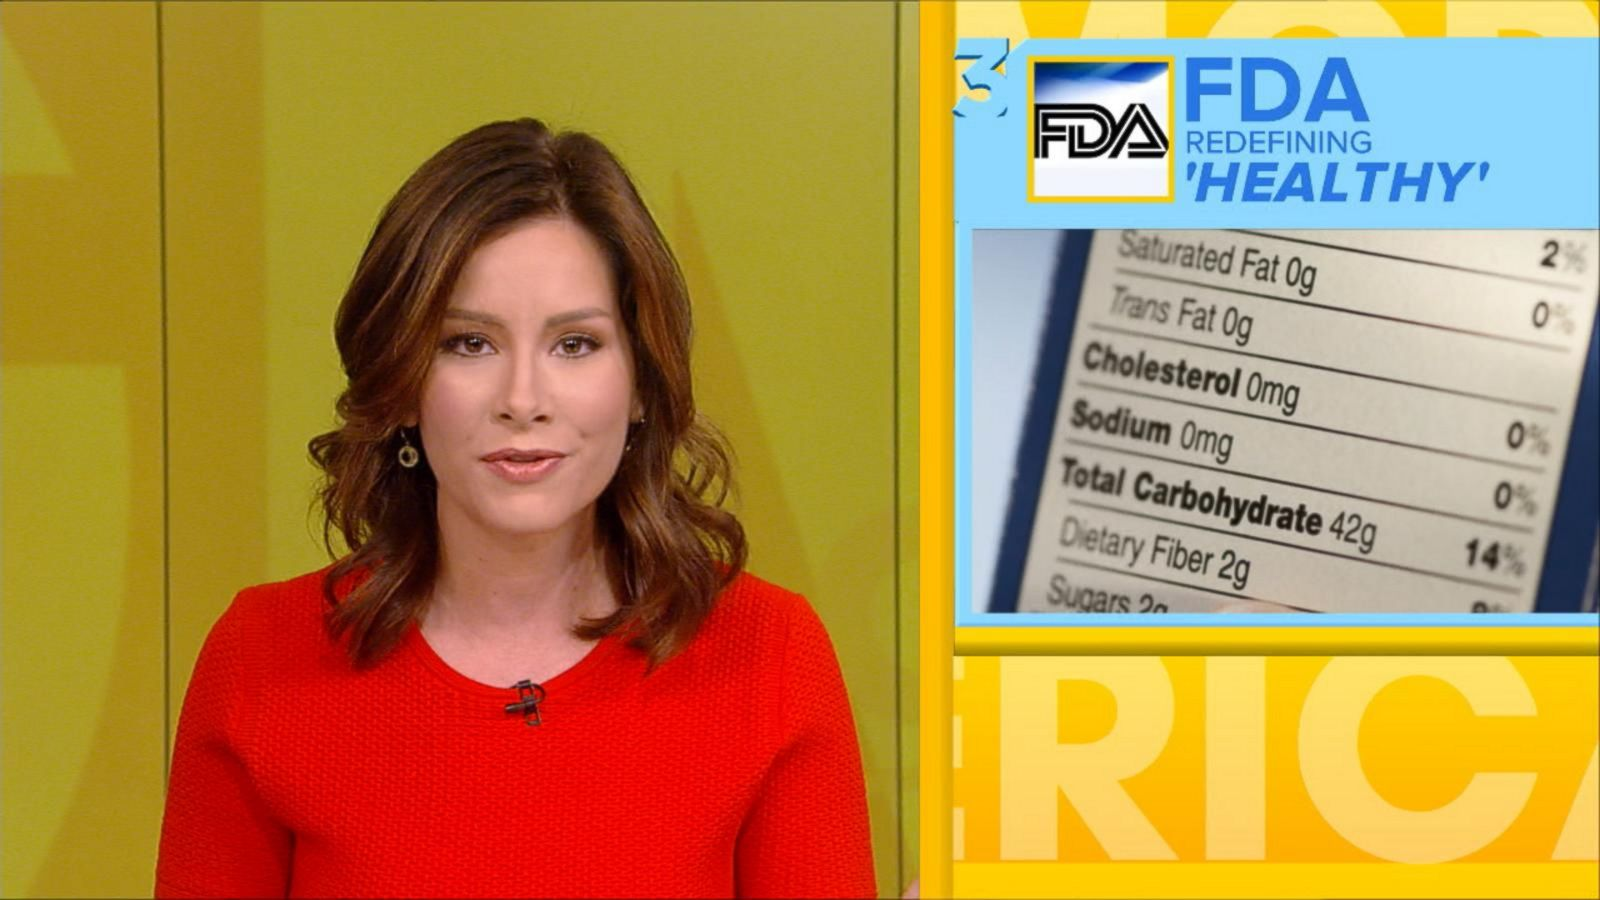 VIDEO: FDA Takes Steps to Redefine 'Healthy'